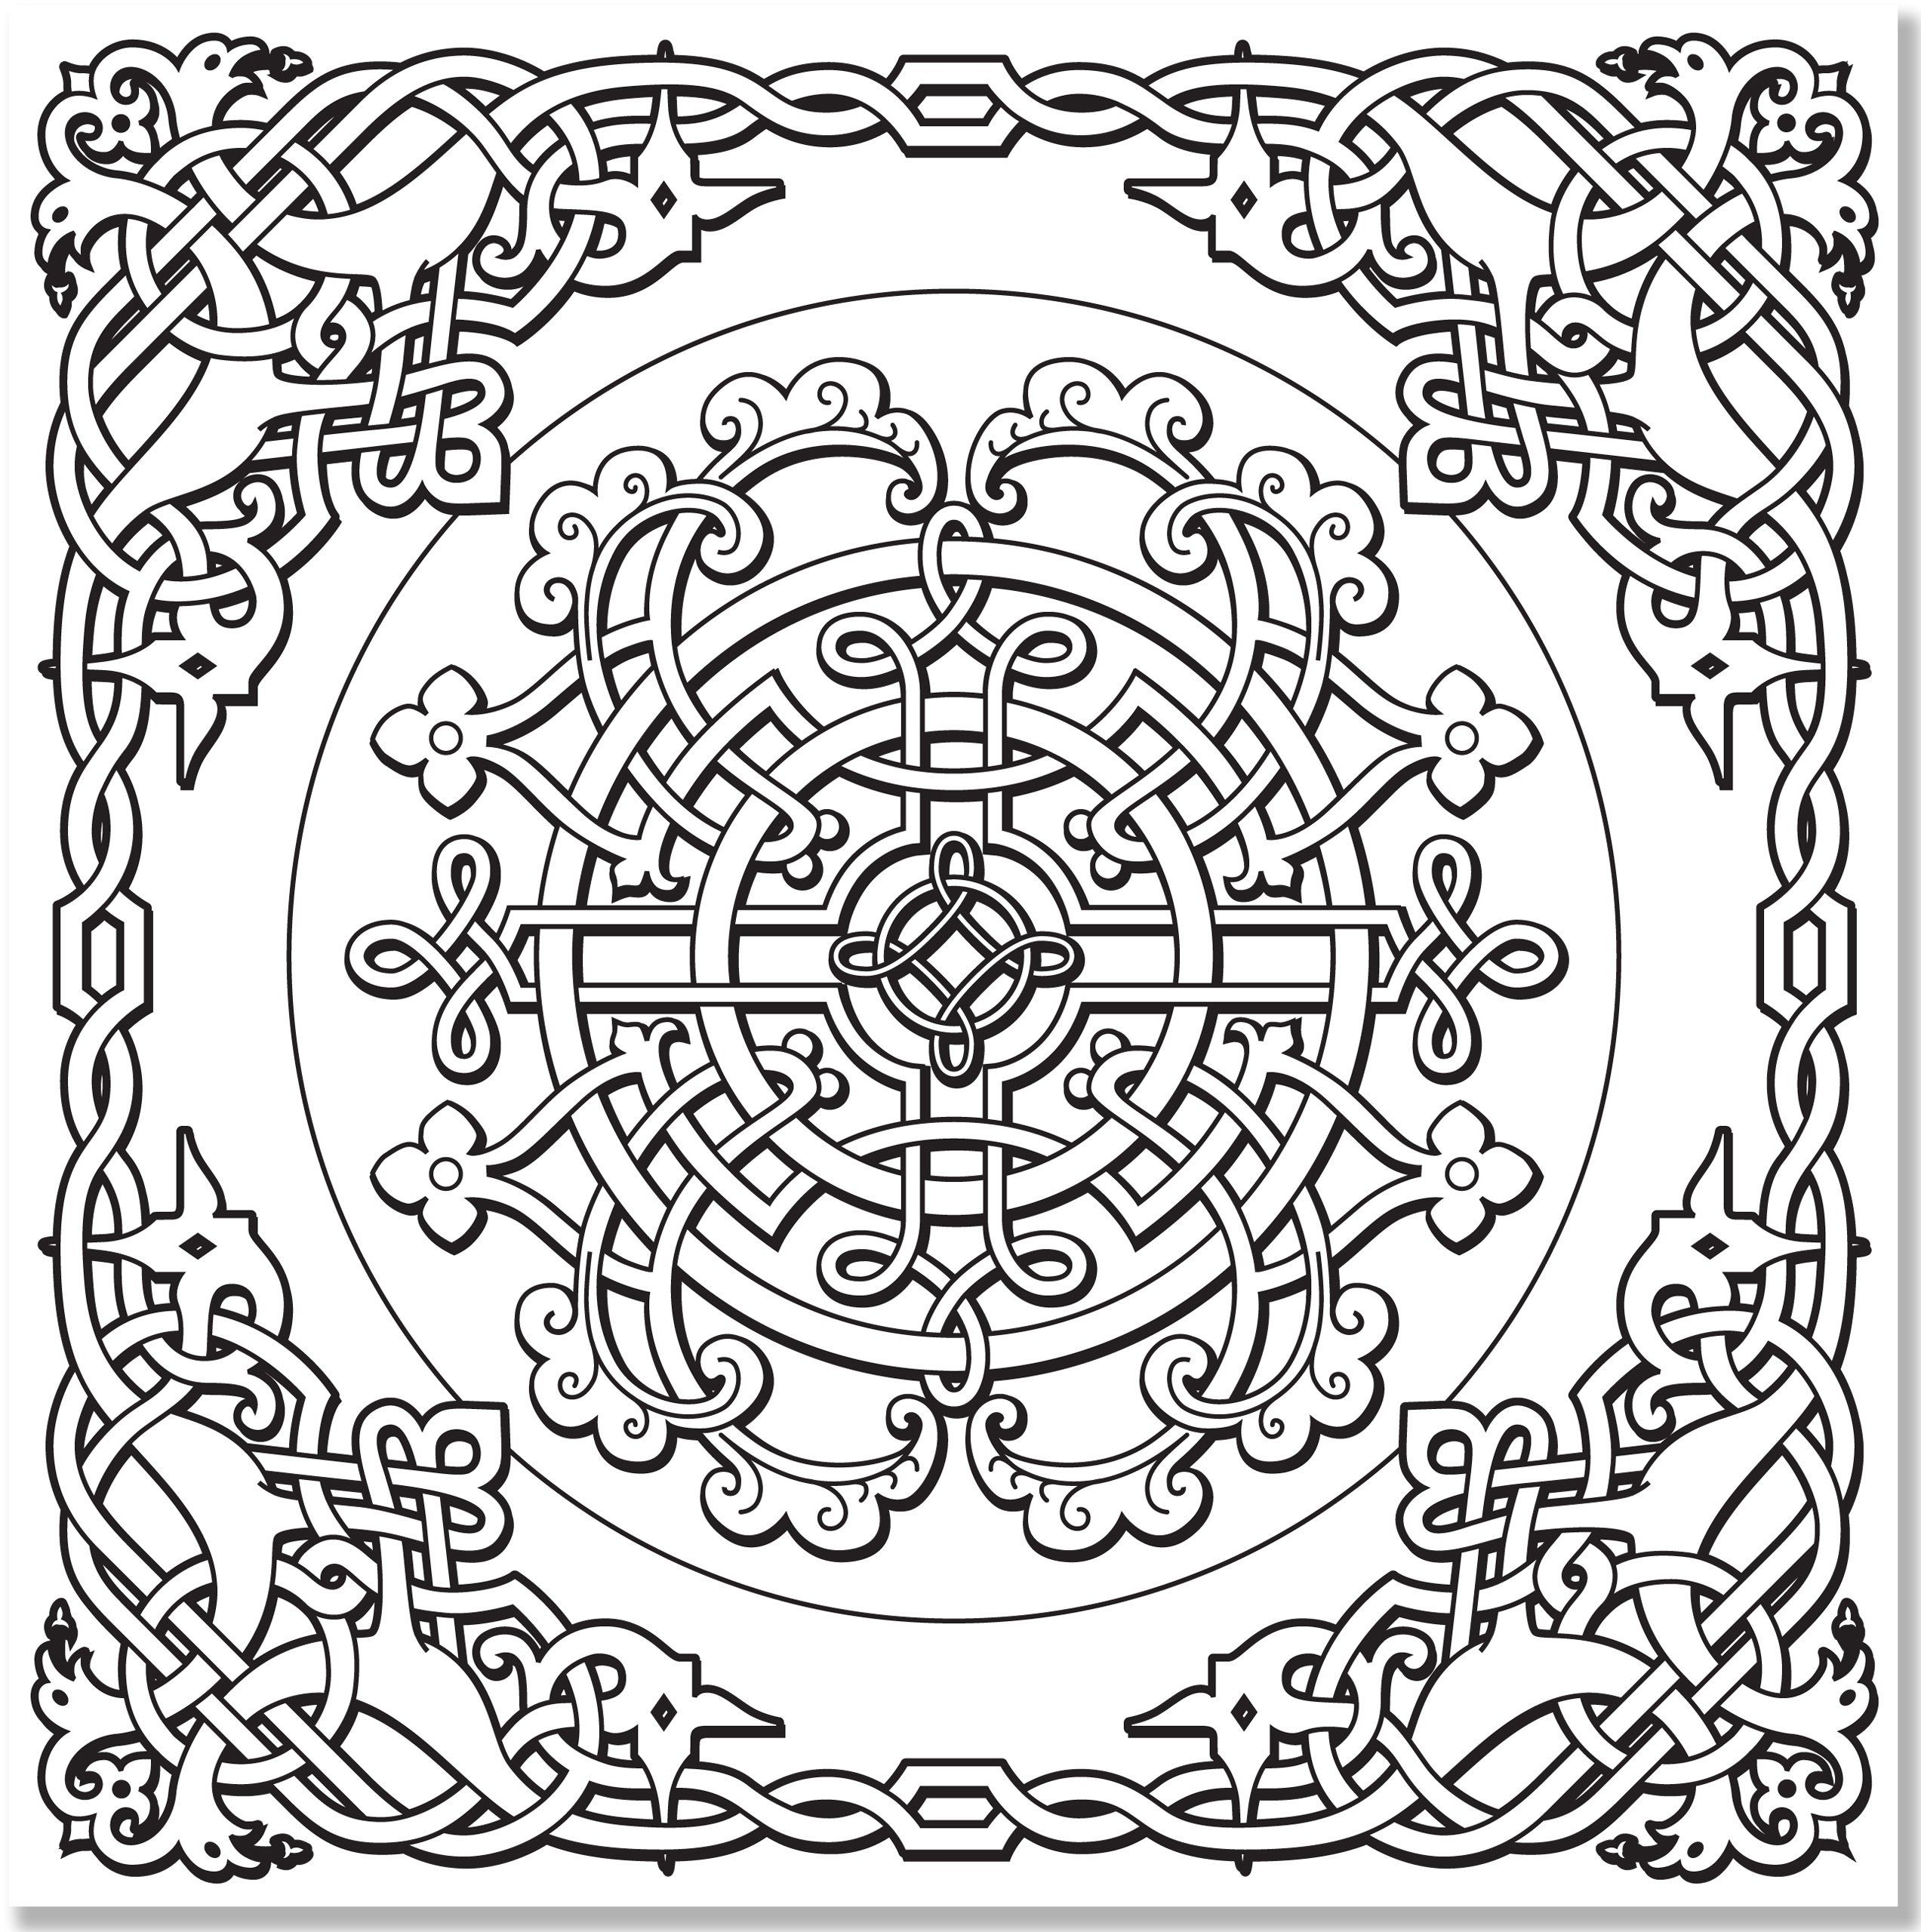 Coloring Pages To Print Celtic Designs - Coloring Home